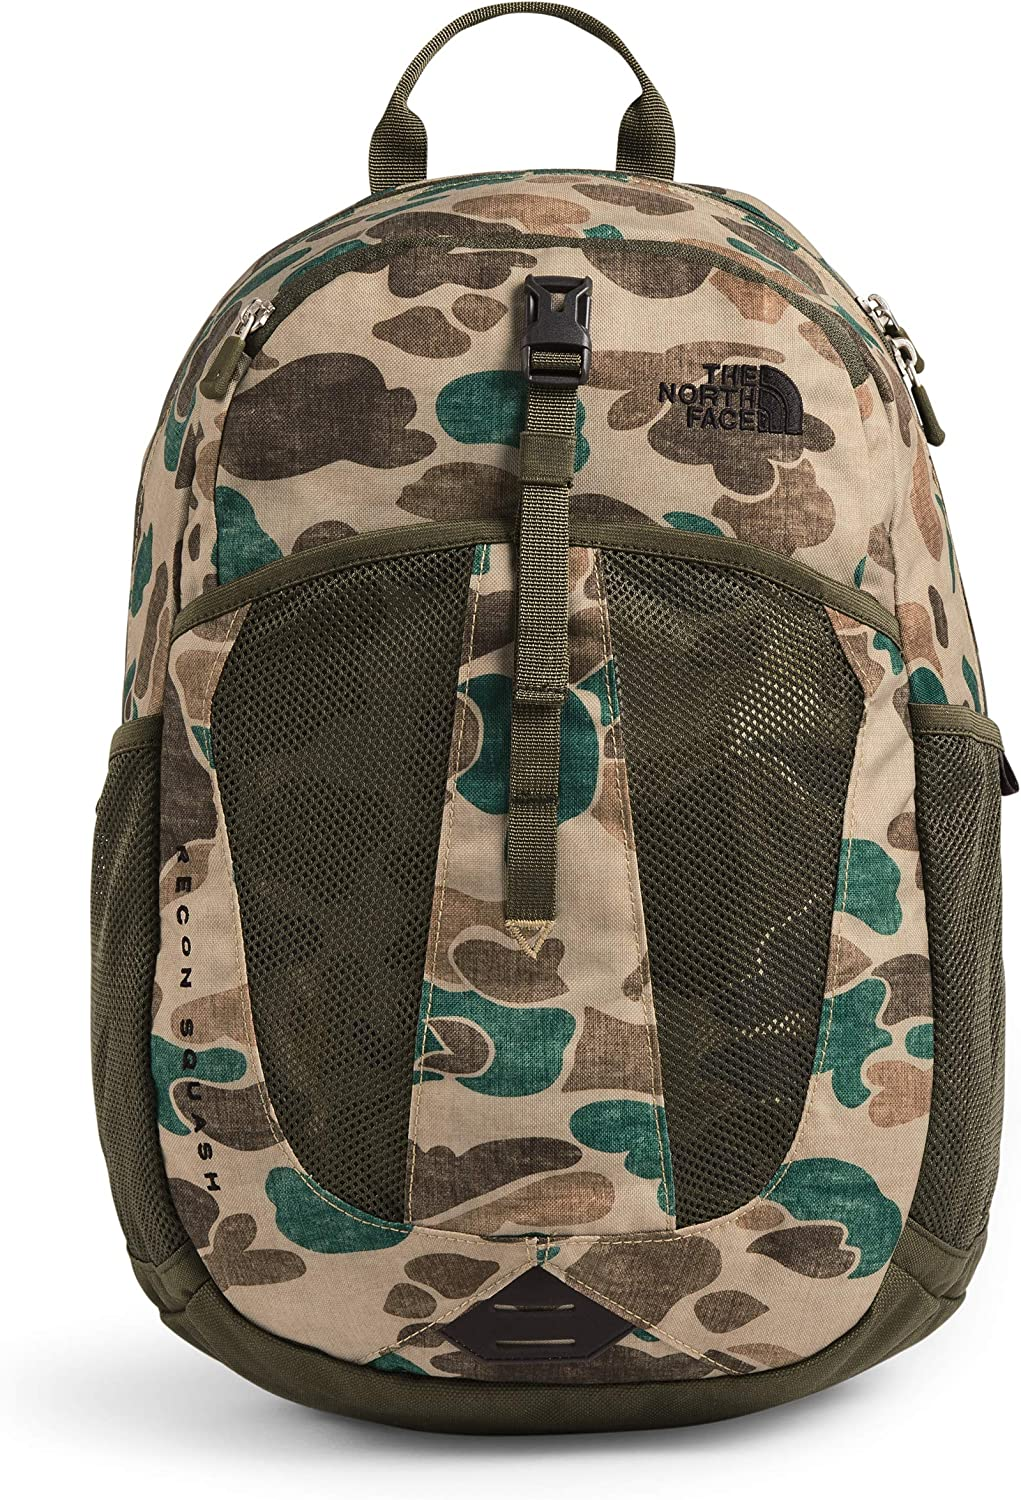 The North Face Unisex Recon Squash Backpack (Youth)